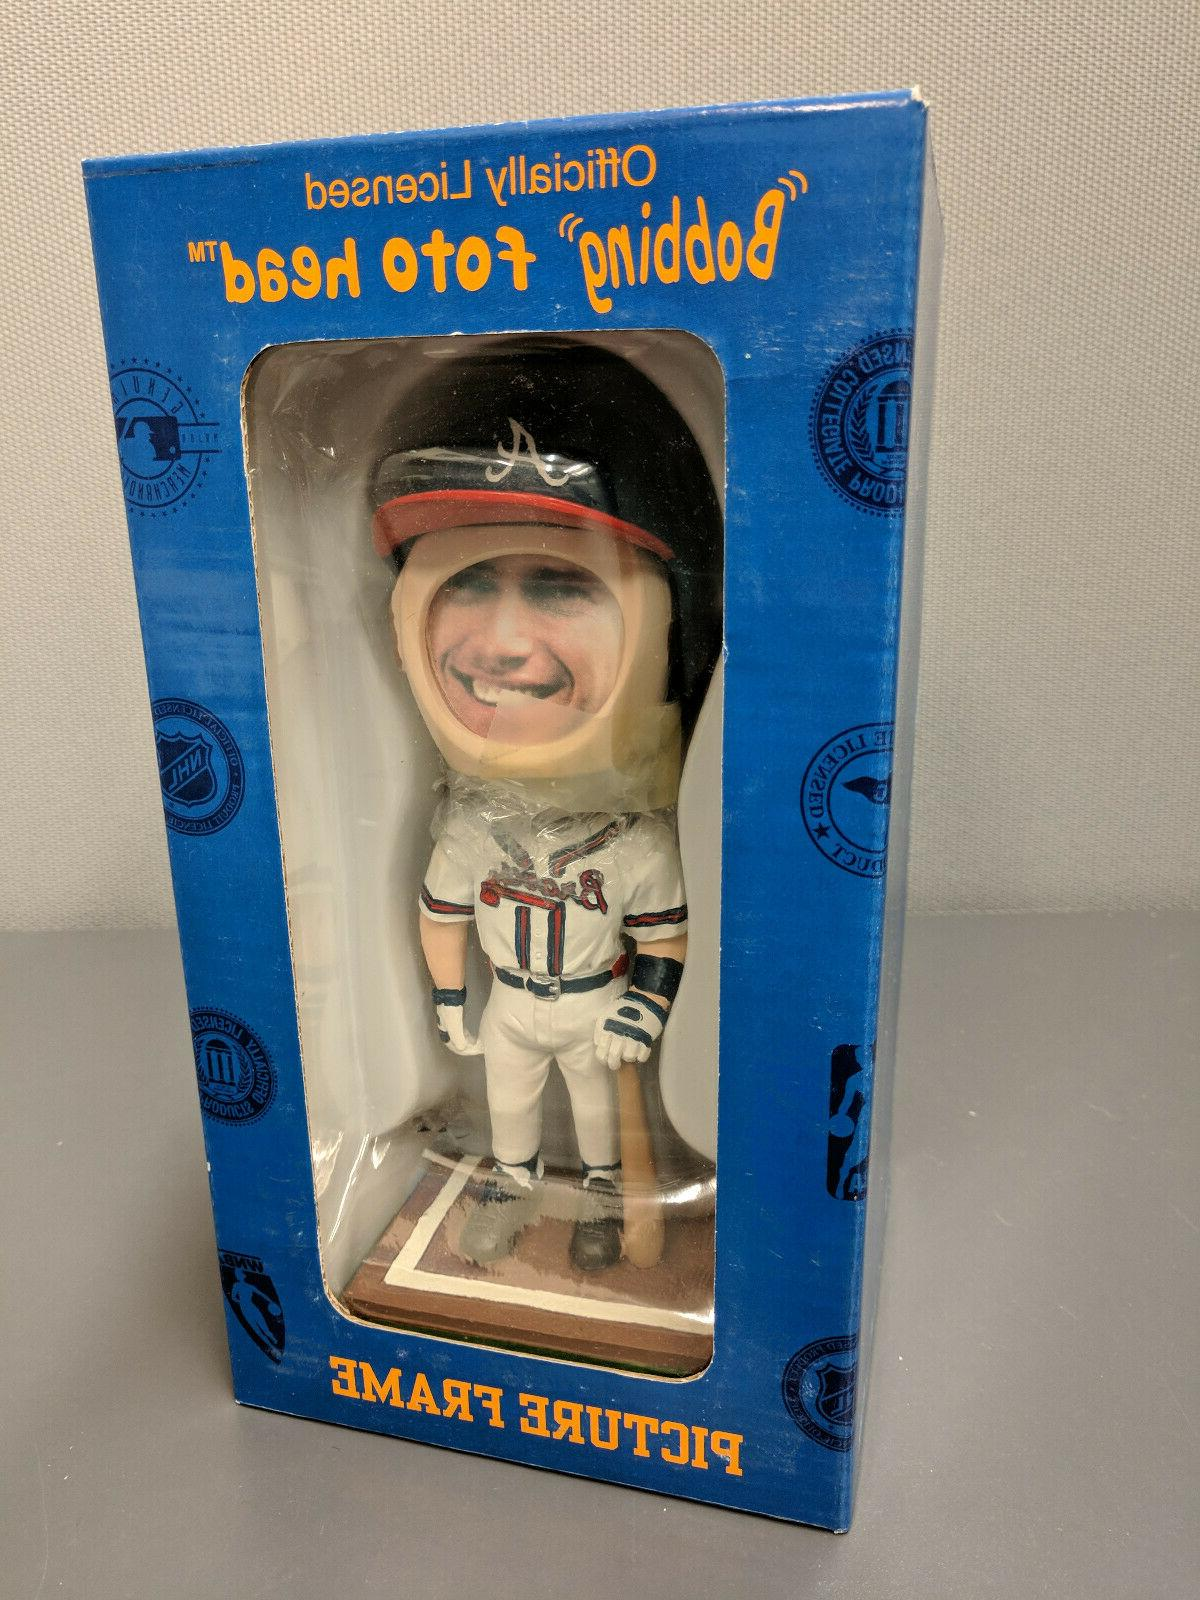 case of 12 bobblehead picture frame officially